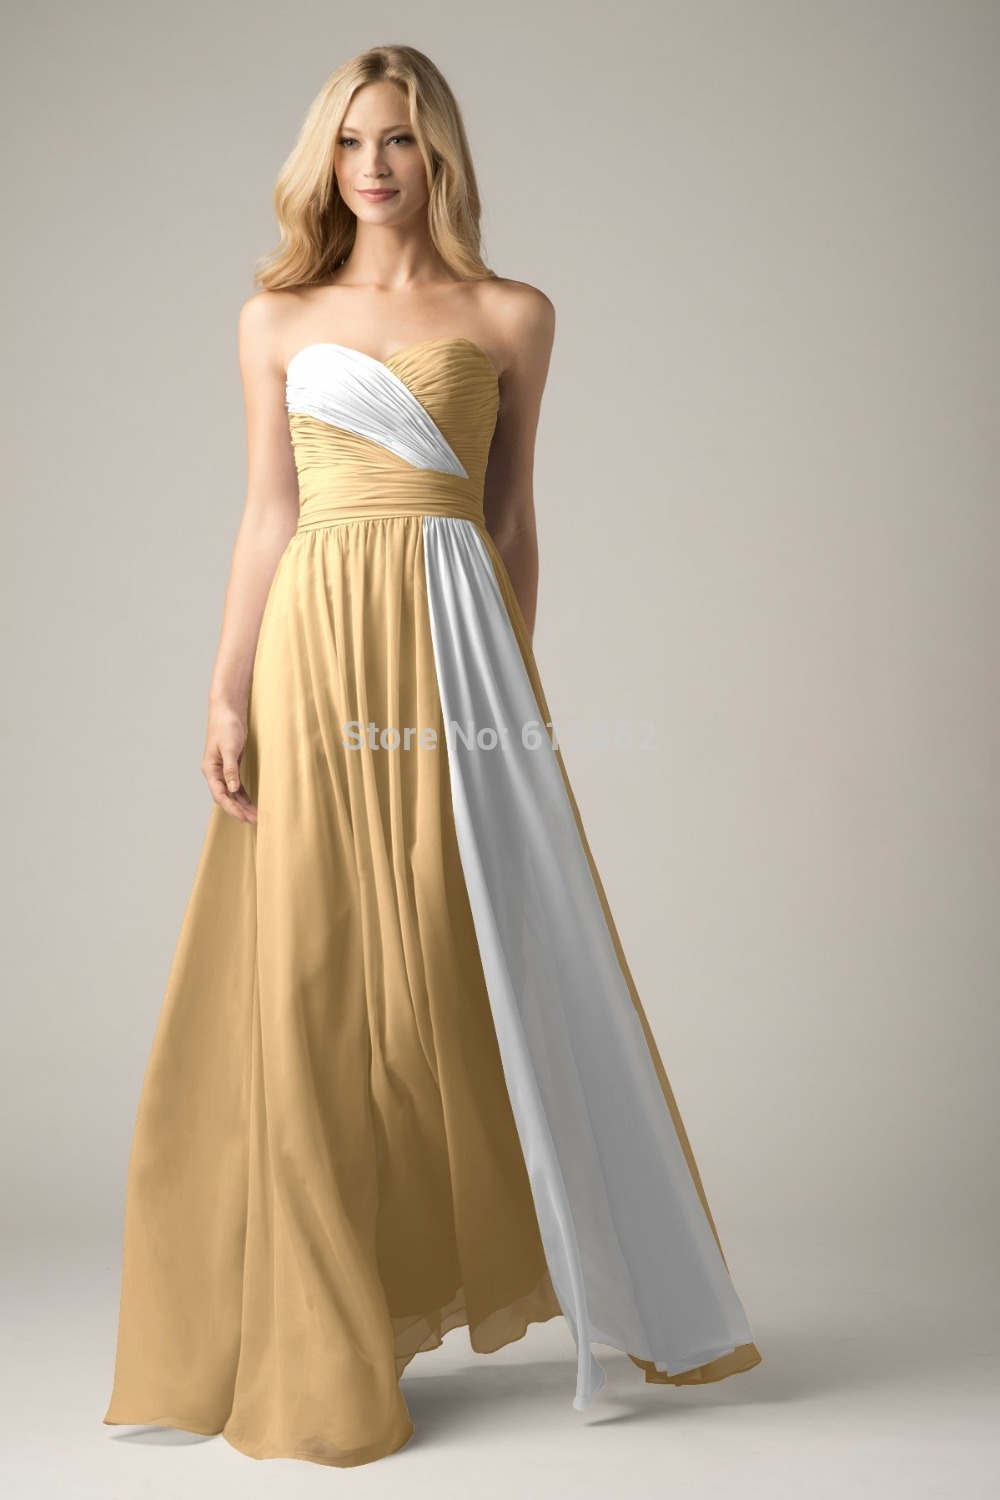 Popular Prom Dresses White and Gold Strapless-Buy Cheap Prom ...